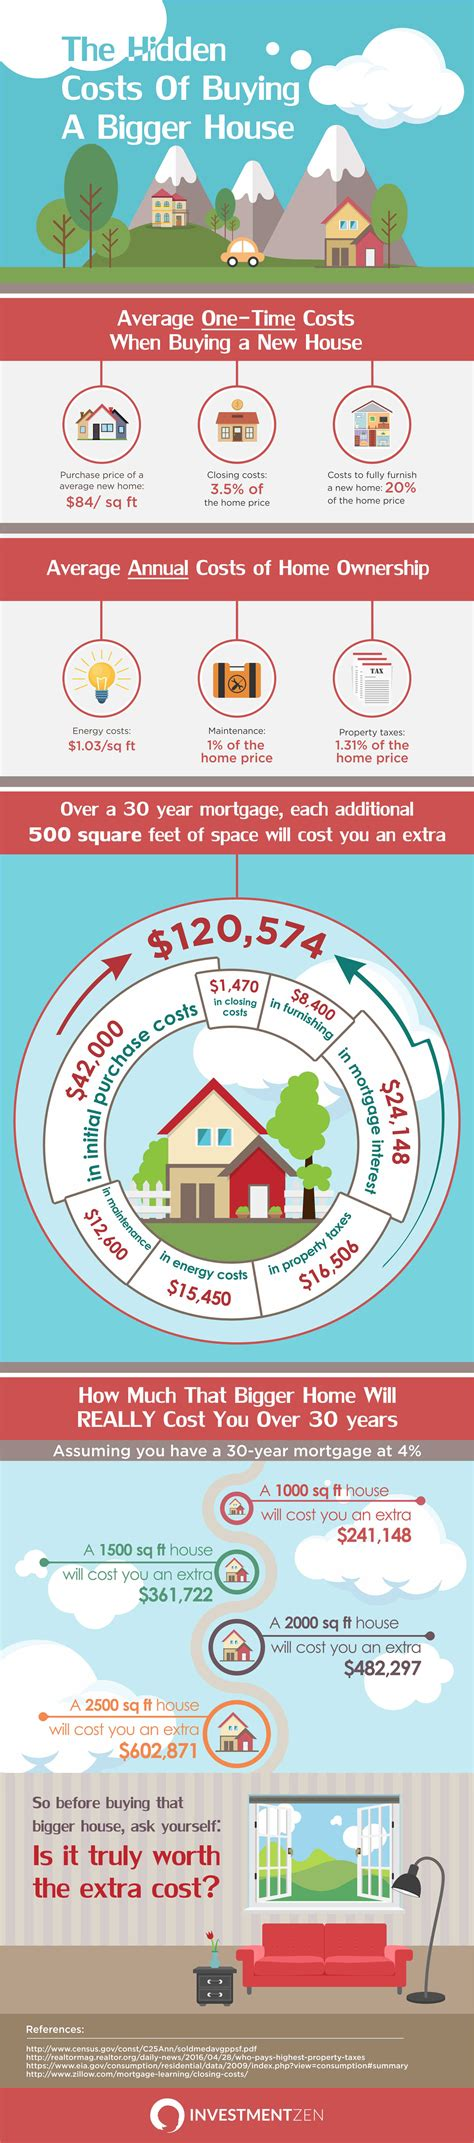 search fees for buying a house the hidden costs of buying a bigger house infographic